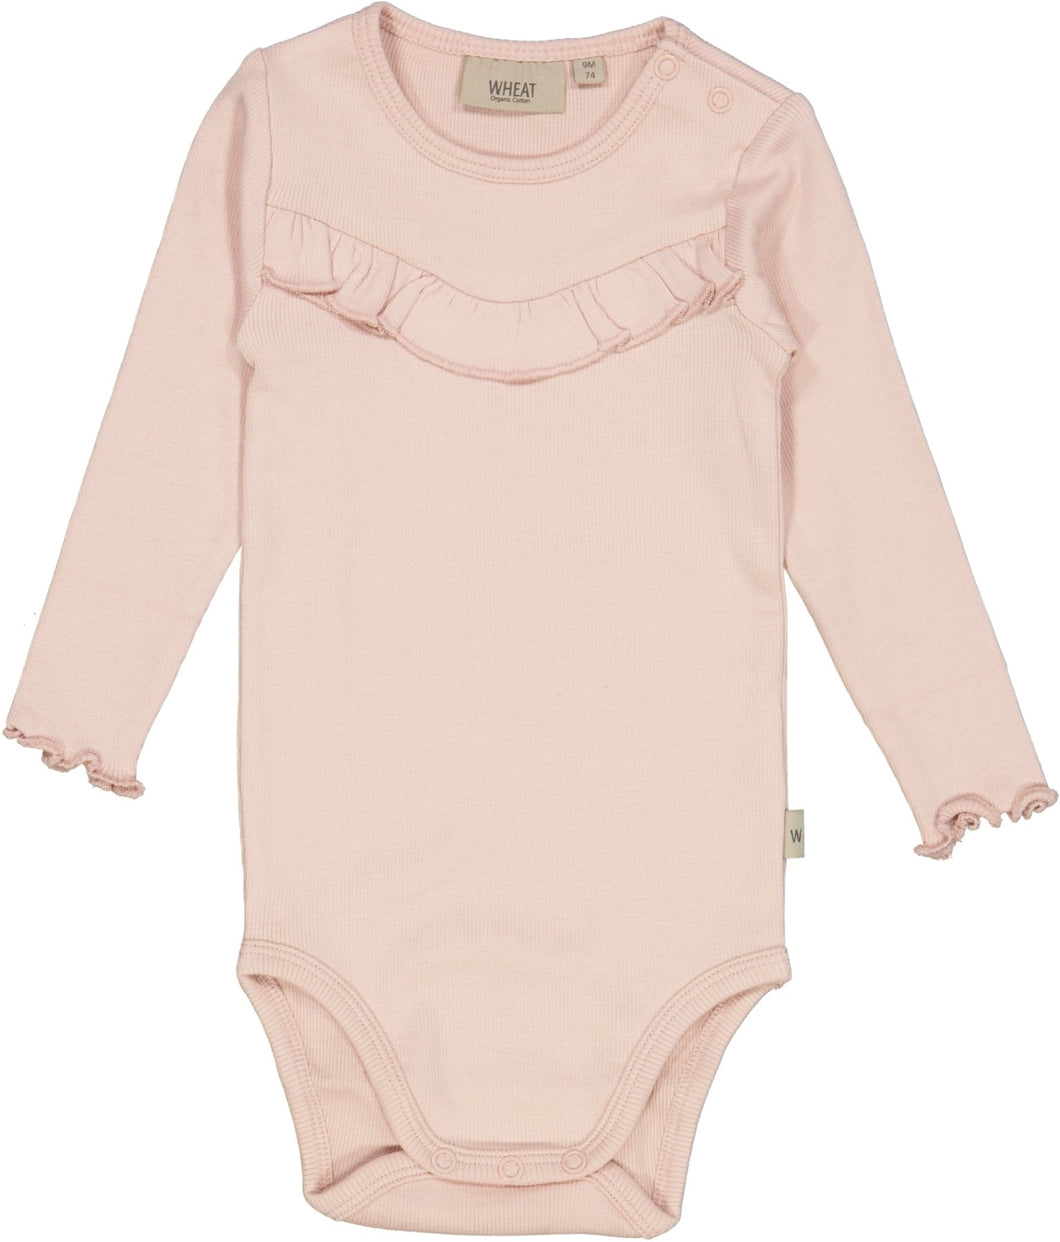 Body Rib Ruffle LS - Little moon